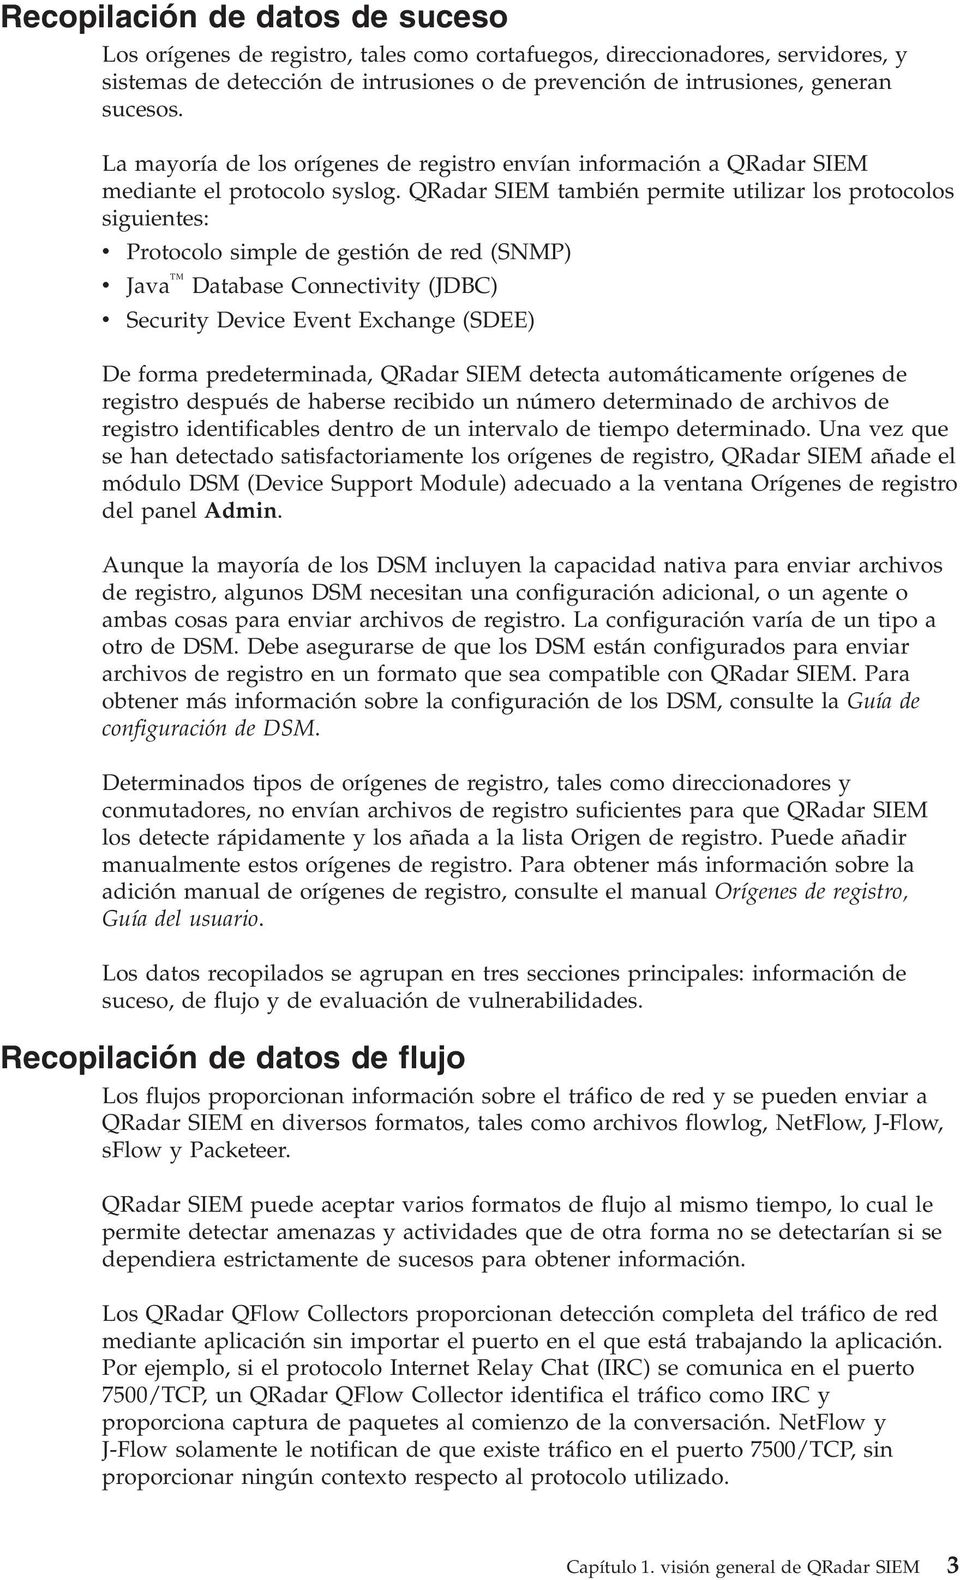 QRadar SIEM también permite utilizar los protocolos siguientes: v Protocolo simple de gestión de red (SNMP) v Java Database Connectivity (JDBC) v Security Device Event Exchange (SDEE) De forma